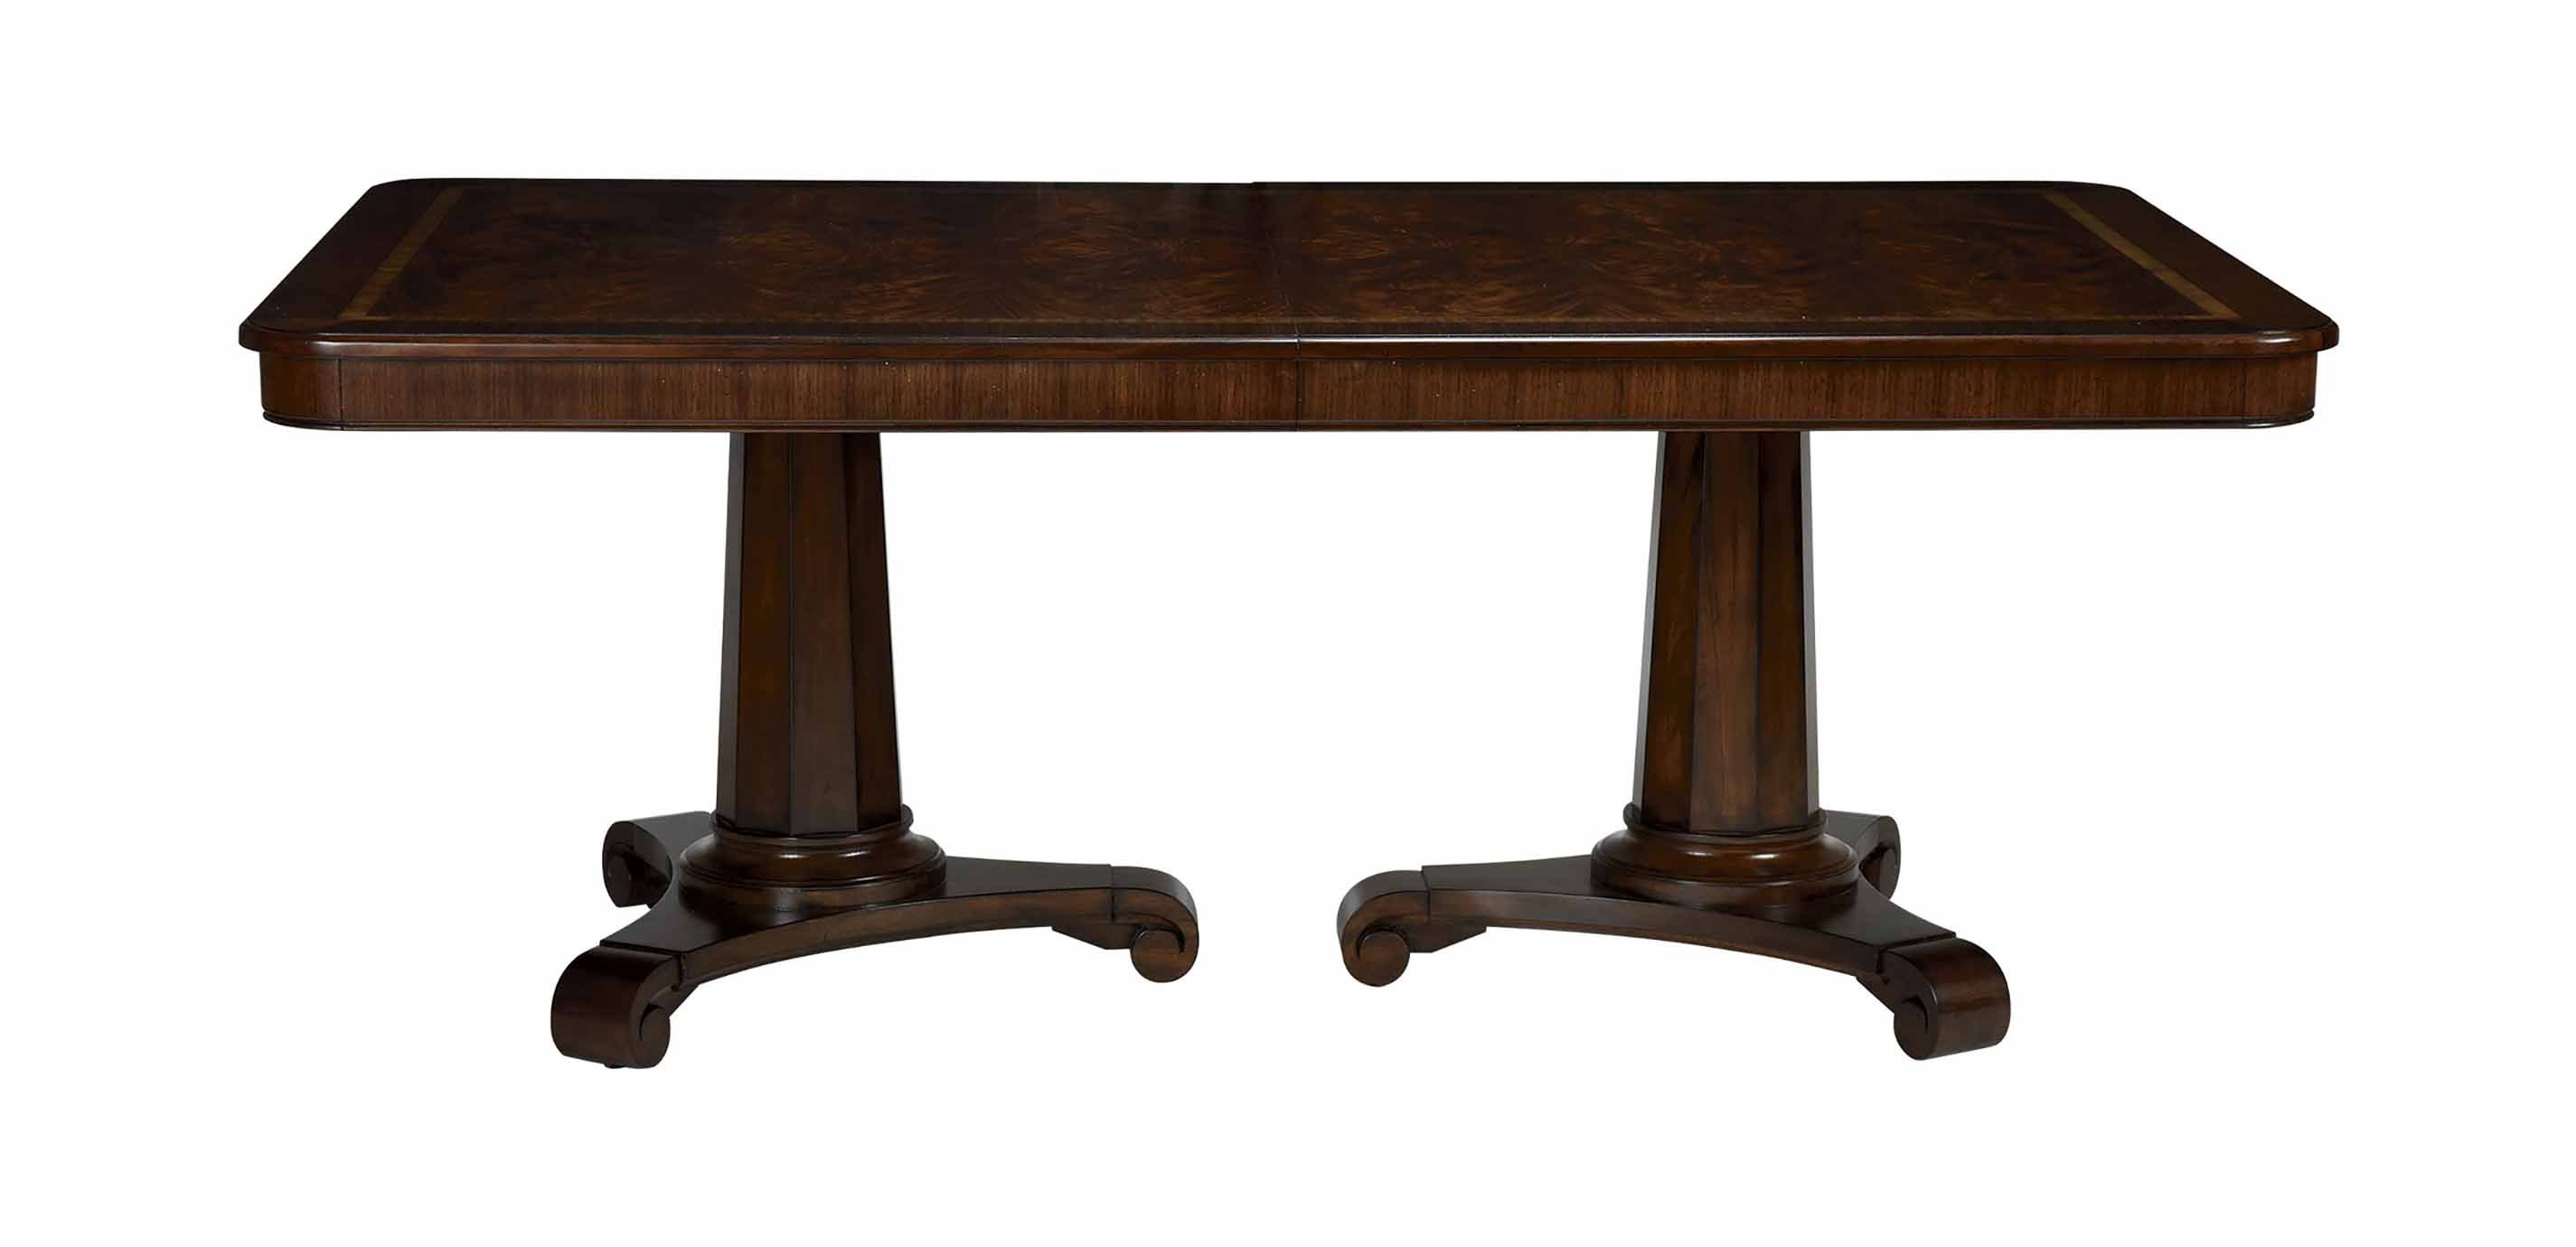 Sanders Dining Table Tables, Ethan Allen Dining Room Tables